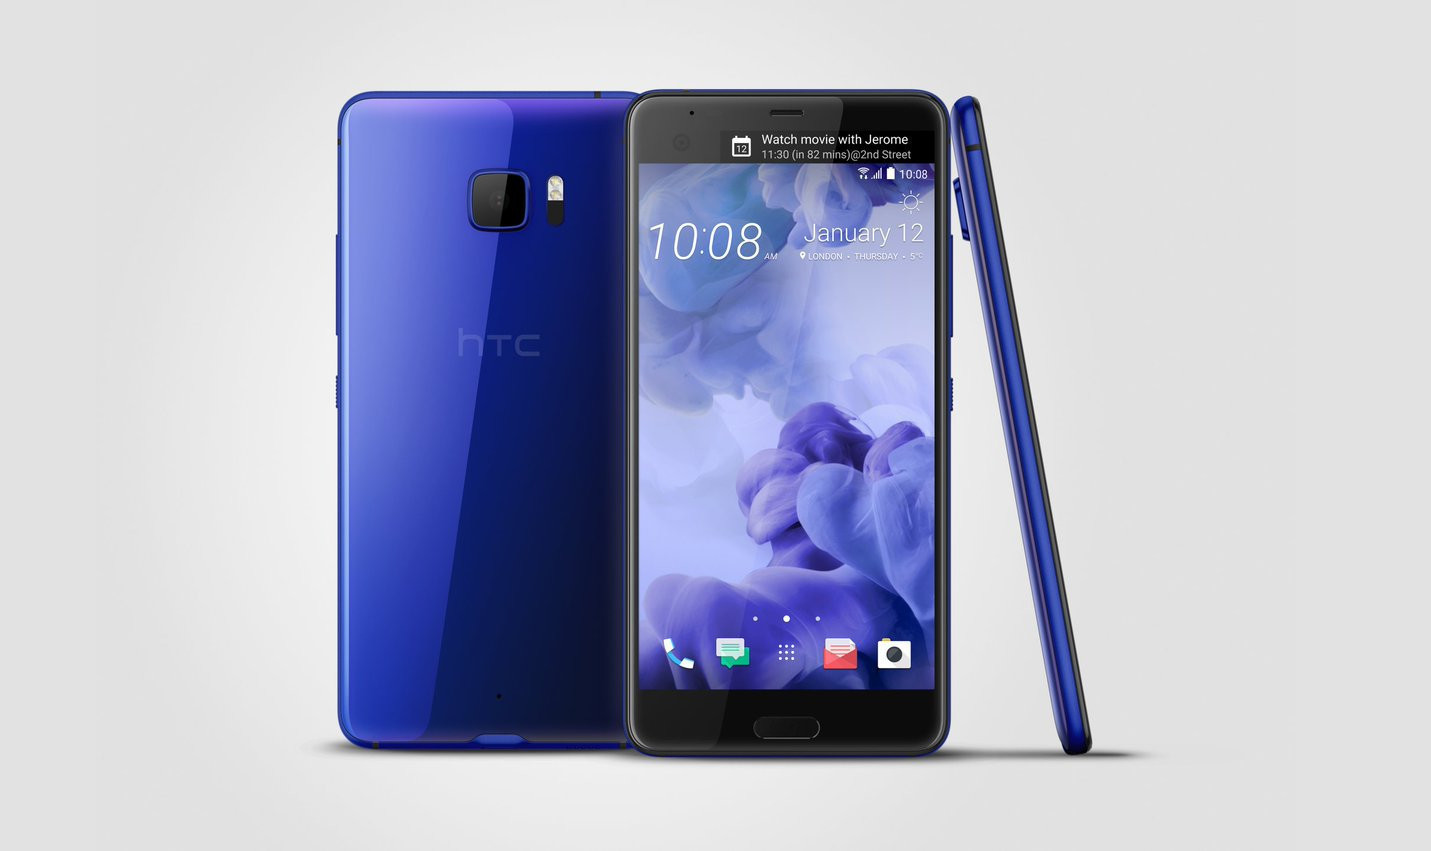 HTC U Ultra flagship with 128GB storage and sapphire glass to launch next month for $920 - Neowin